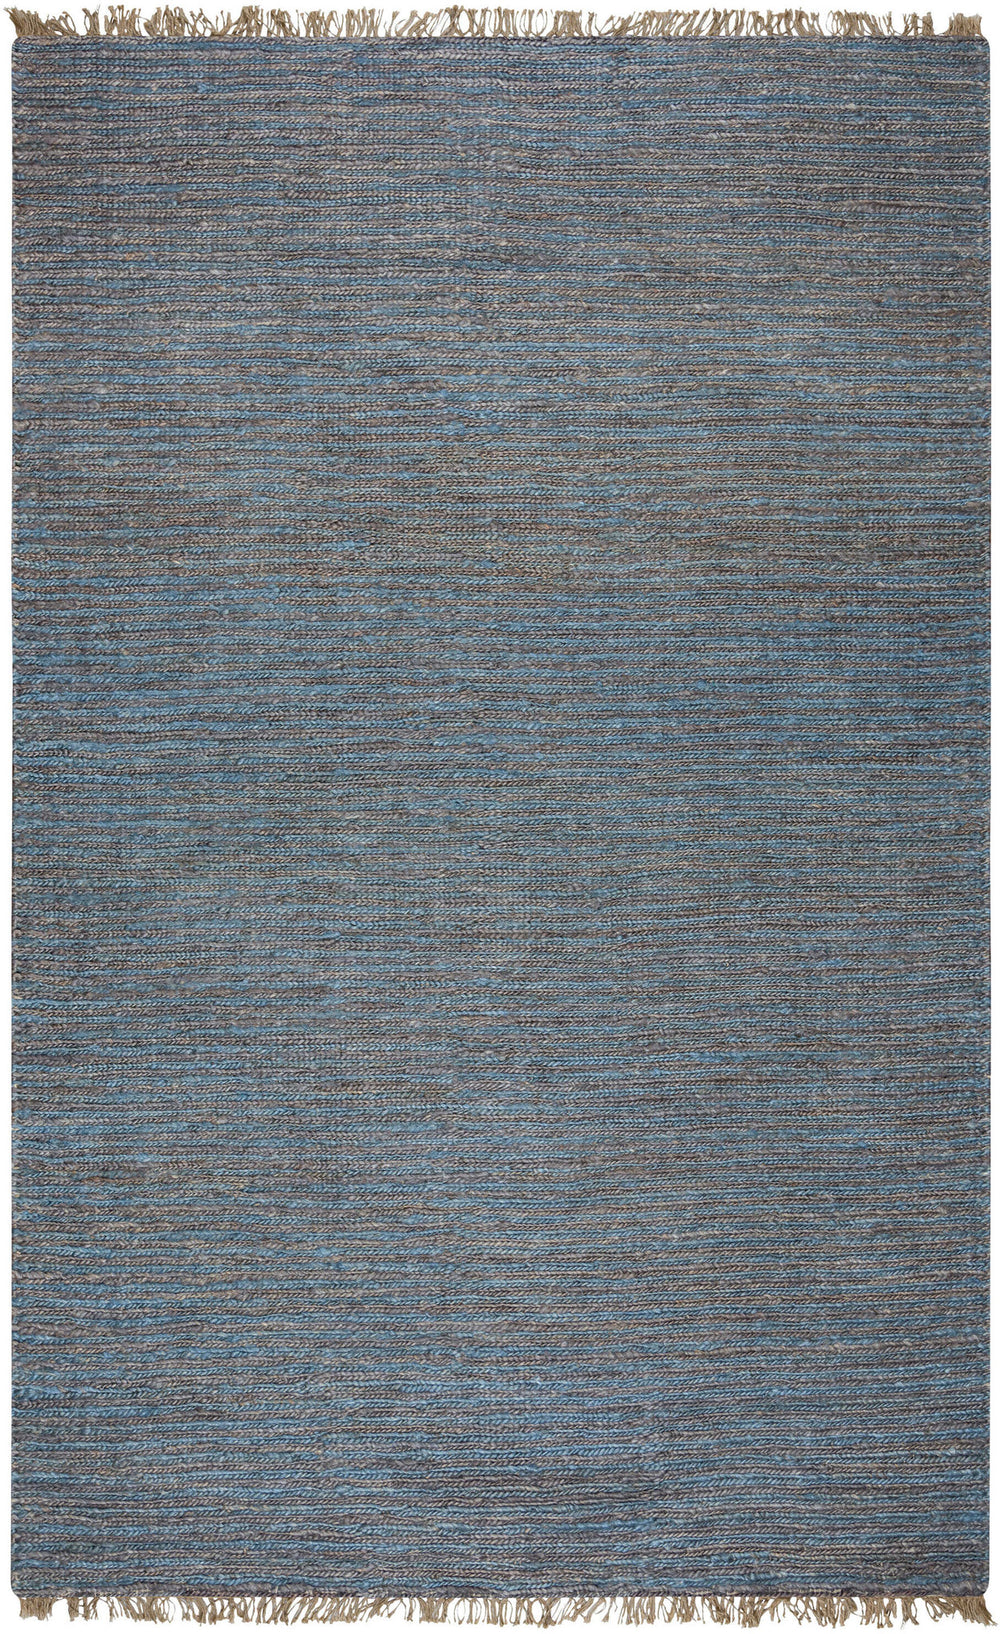 Rizzy Whittier WR9616 Area Rug